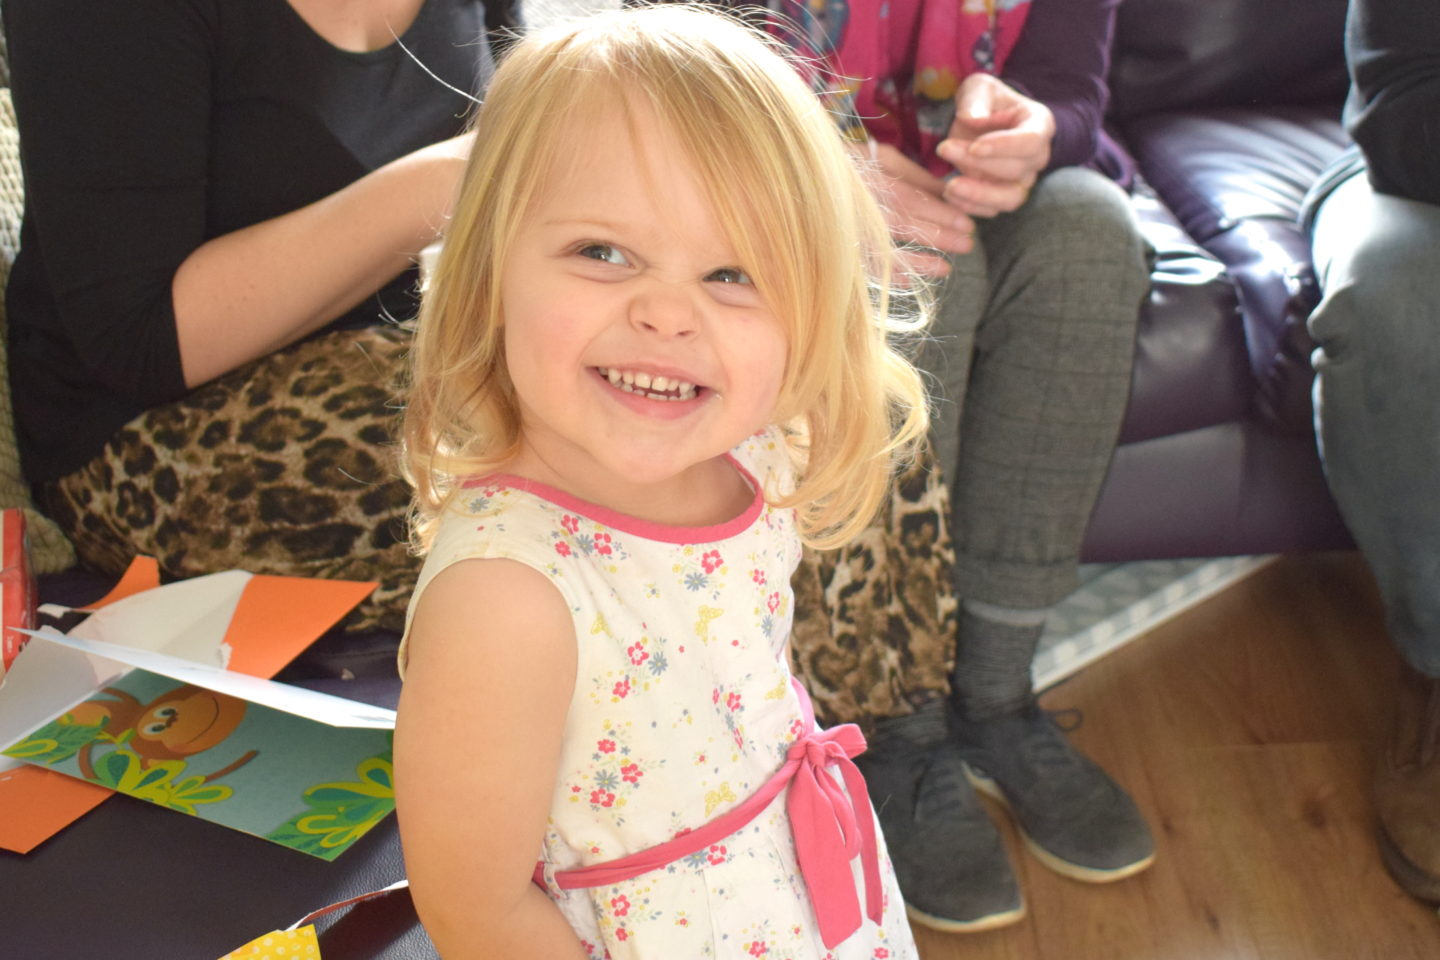 Two year old in a party dress, smiling at the camera